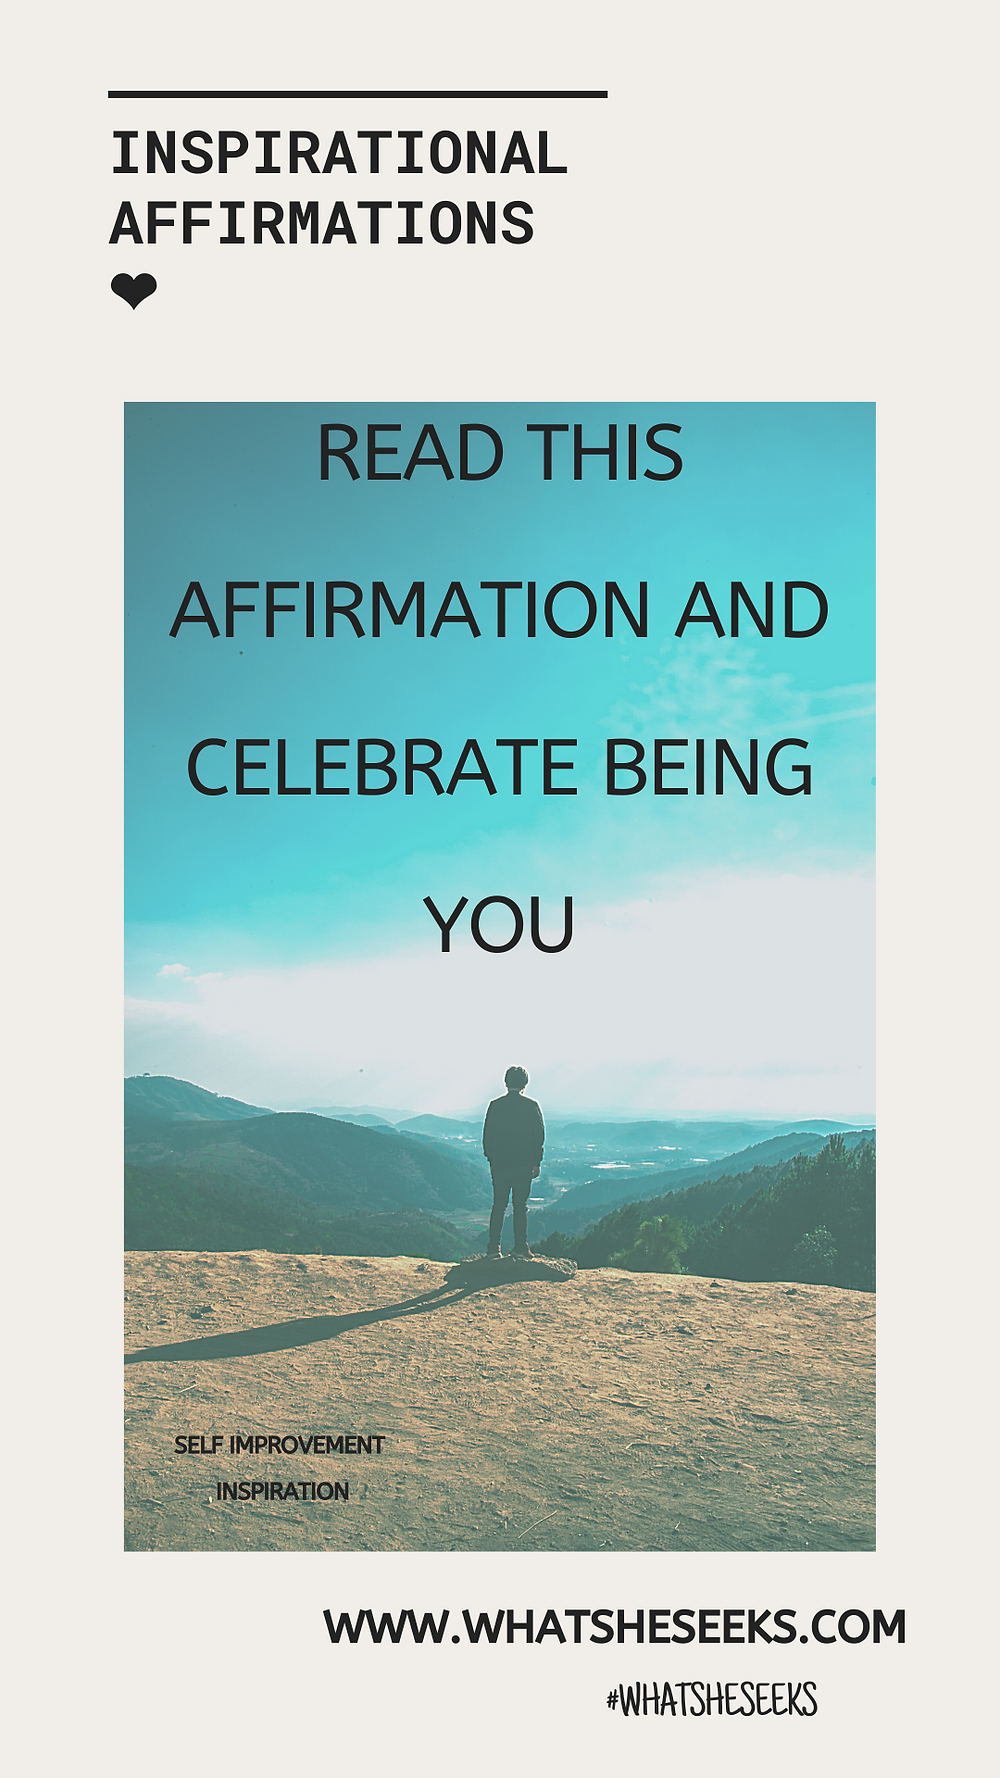 Are you on a path of self discovery? Do you need to learn to love yourself more before others? Read this affirmation for personal growth, insight and self -love. You are special - Celebrate this today. #whatsheseeks